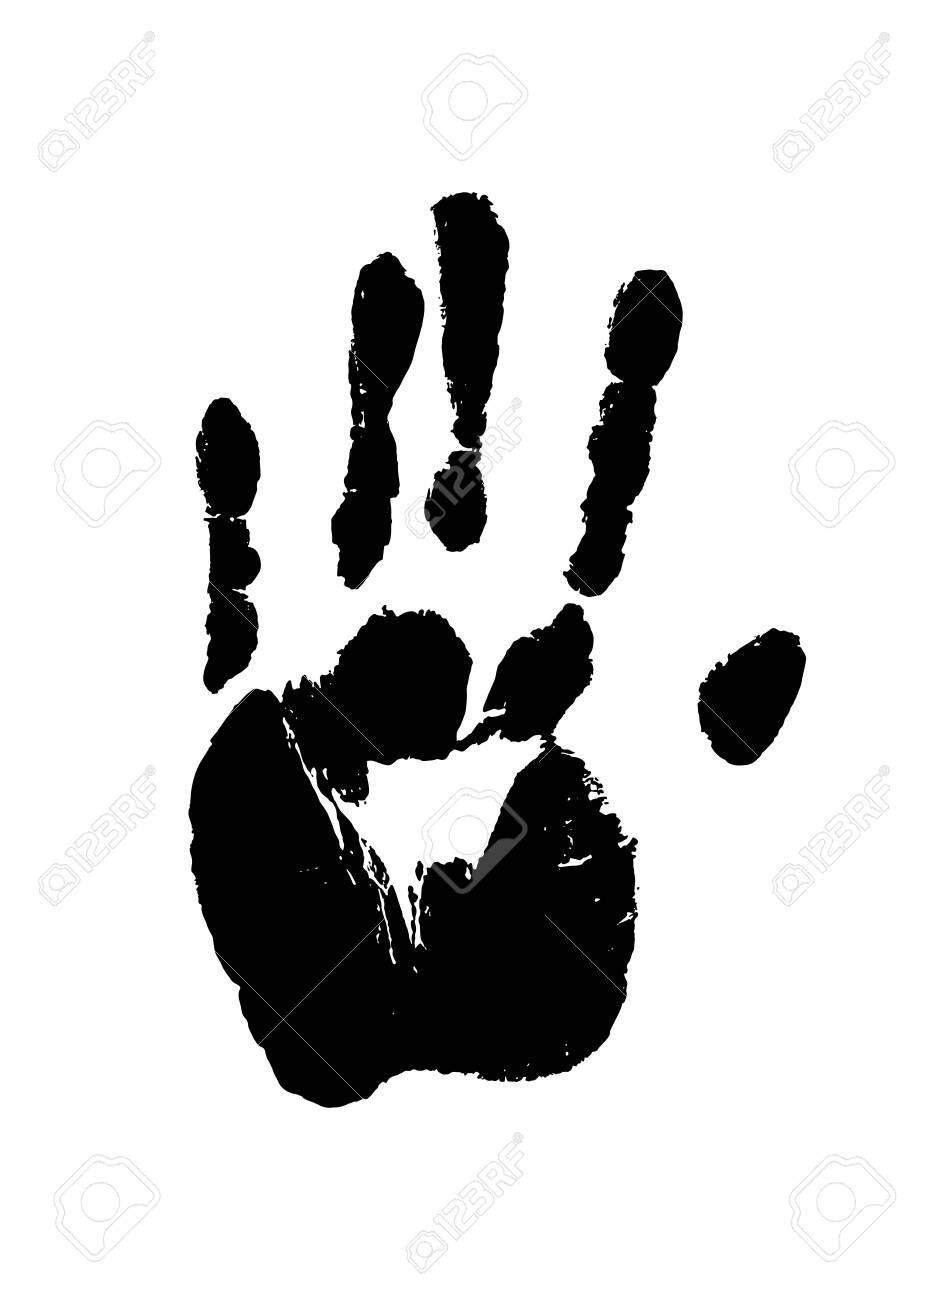 Print of a human hand. Palm imprint in black isolated over white. Vector grunge illustration. - 147419976